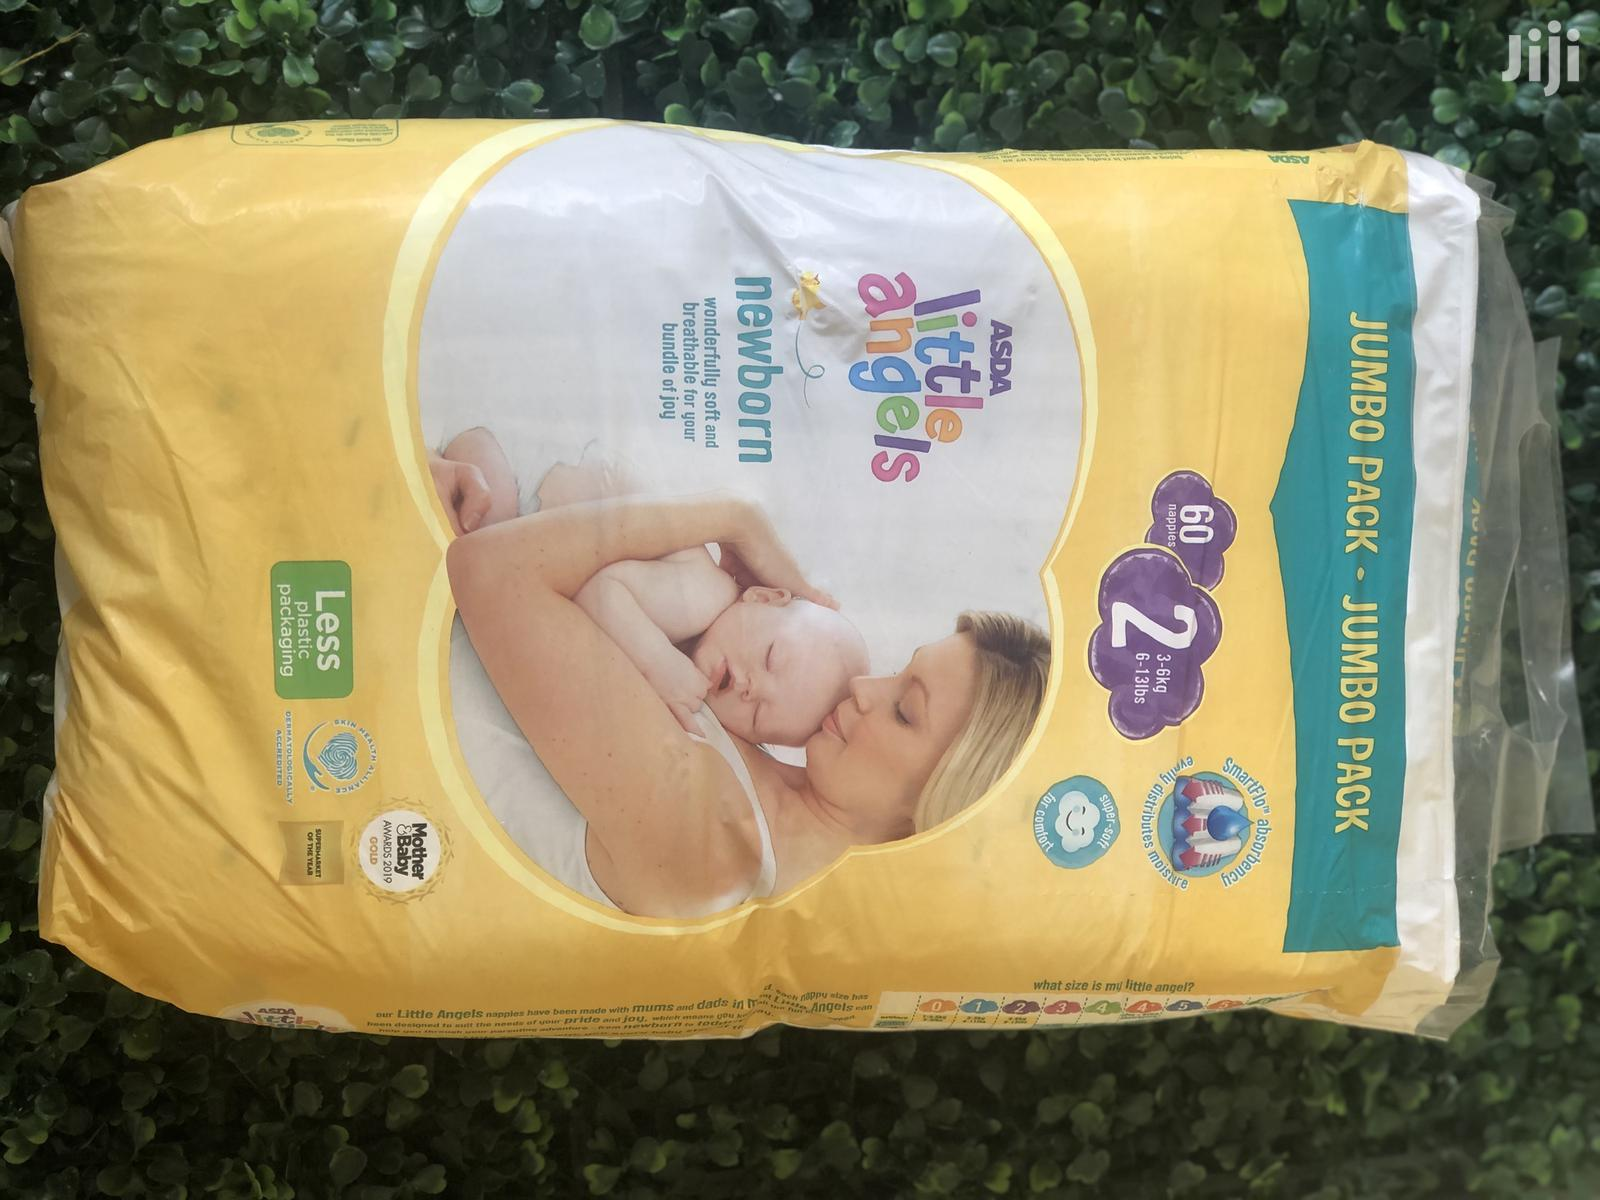 Archive: Diapers, Wipes And Baby Skin Care Products